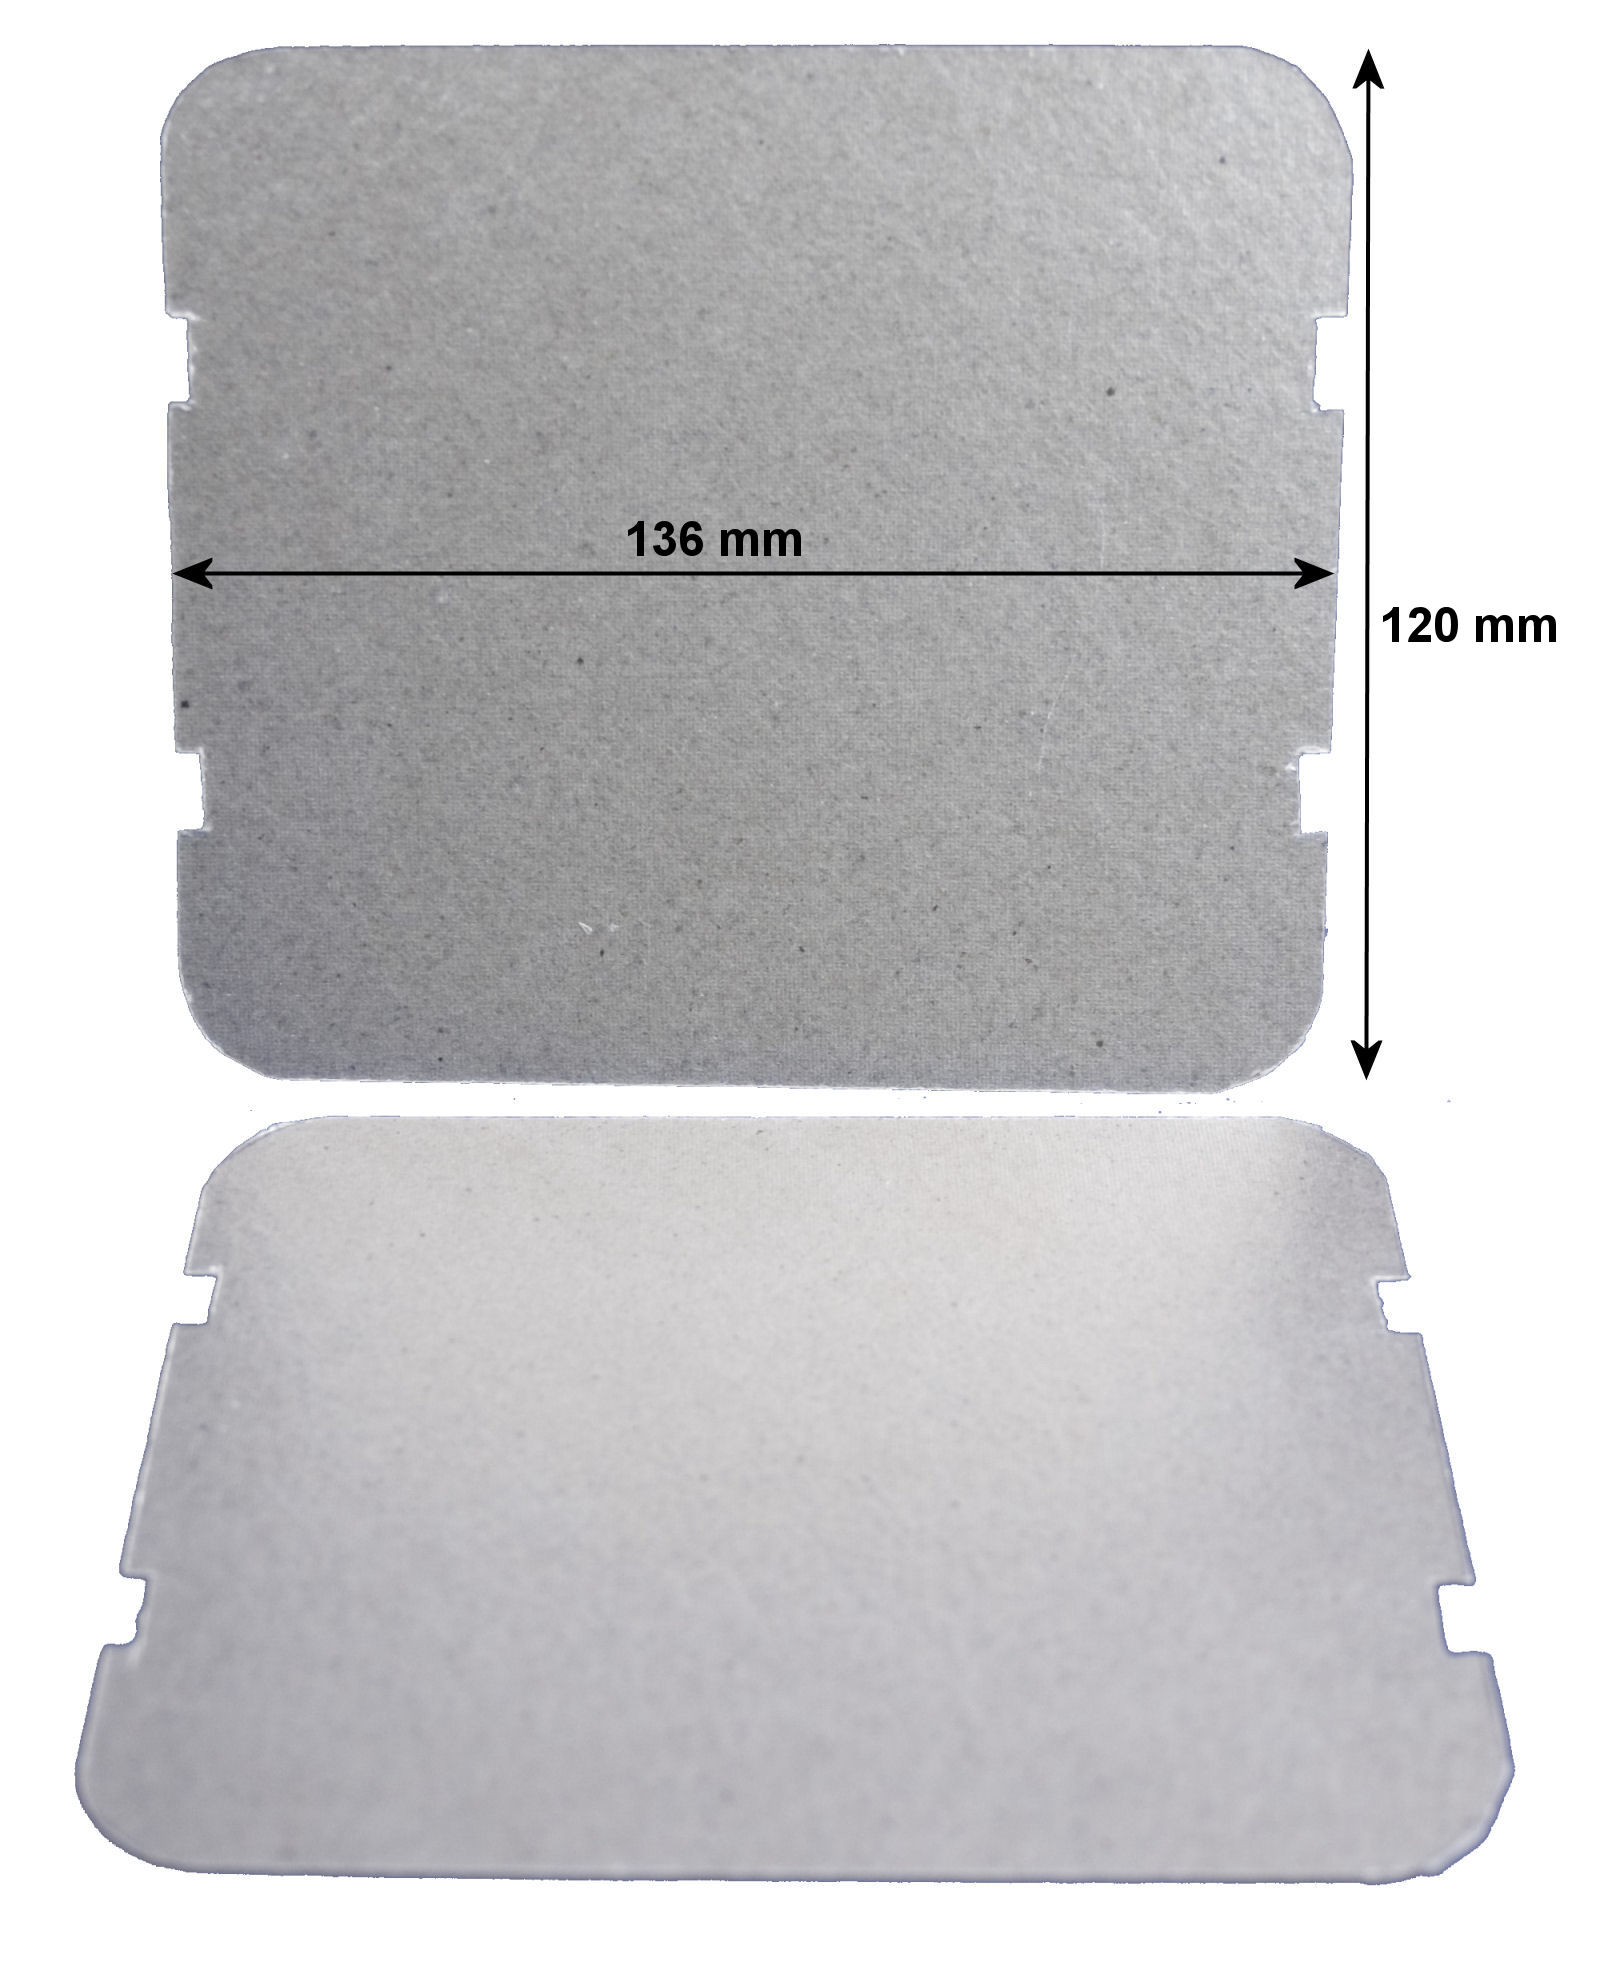 Waveguide Covers For Sharp Microwave Ovens Pcovpa308wre1